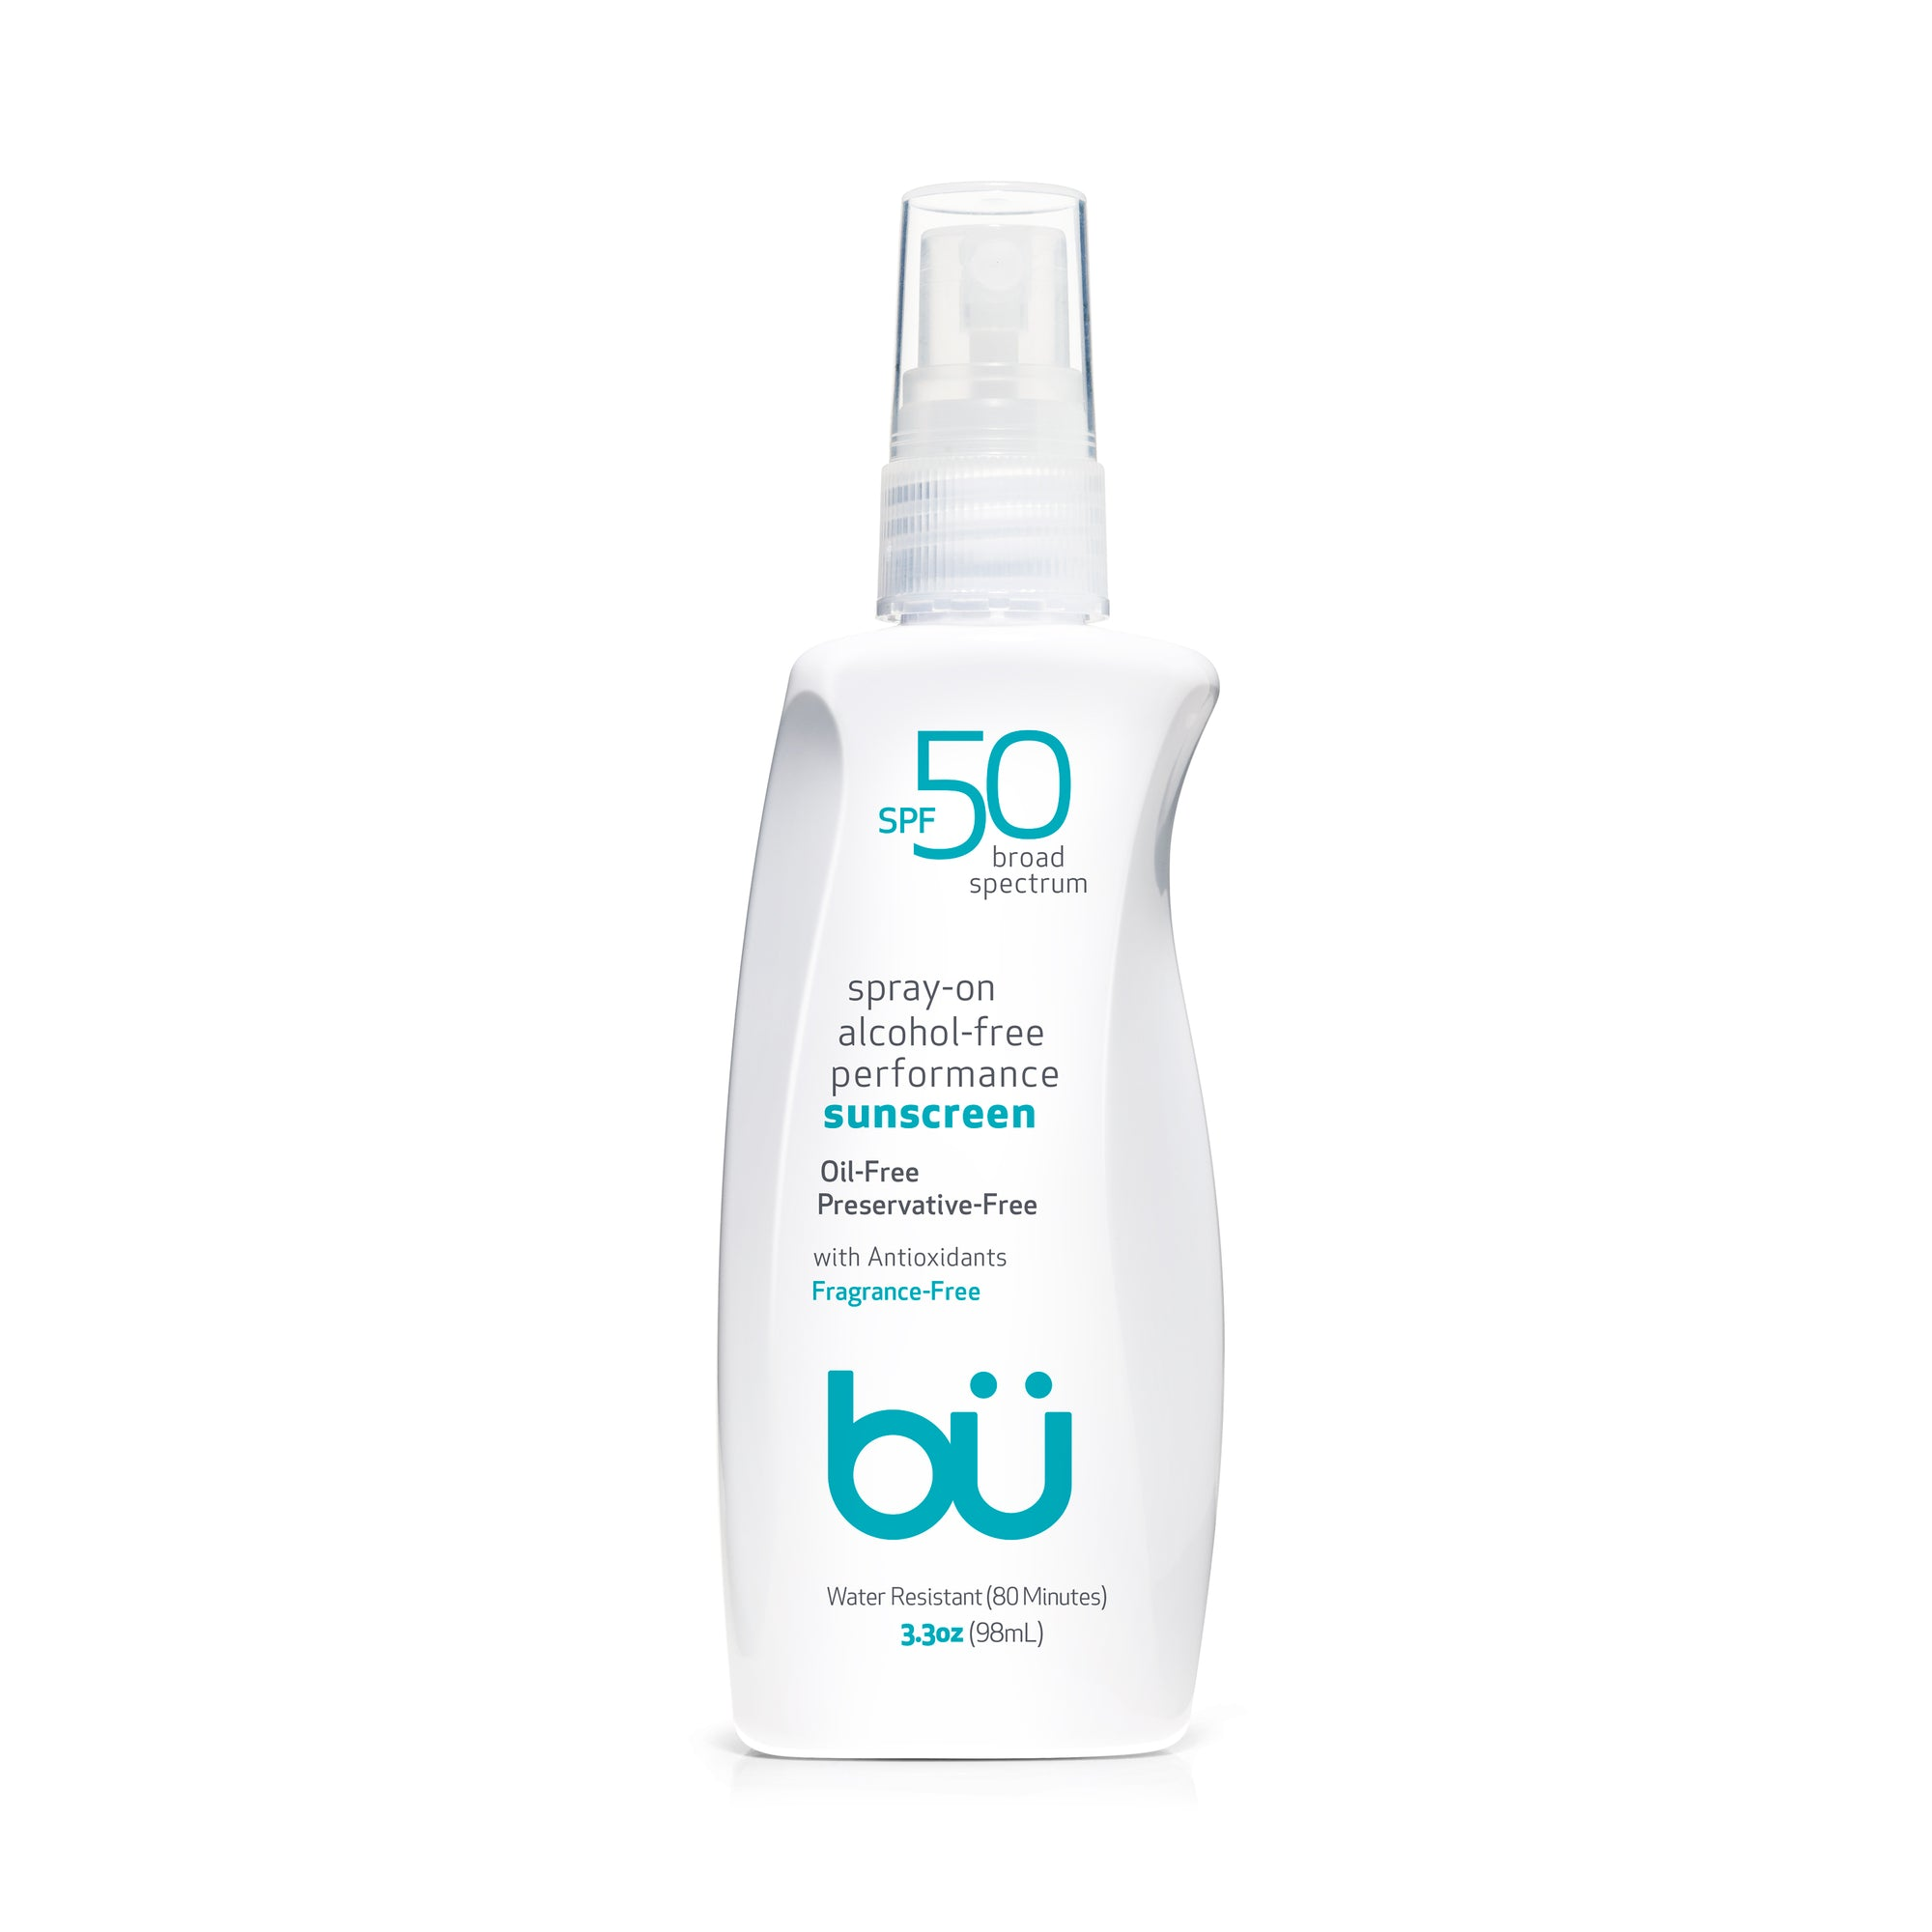 Bu SPF 50 Alcohol-Free/Fragrance-Free Spray